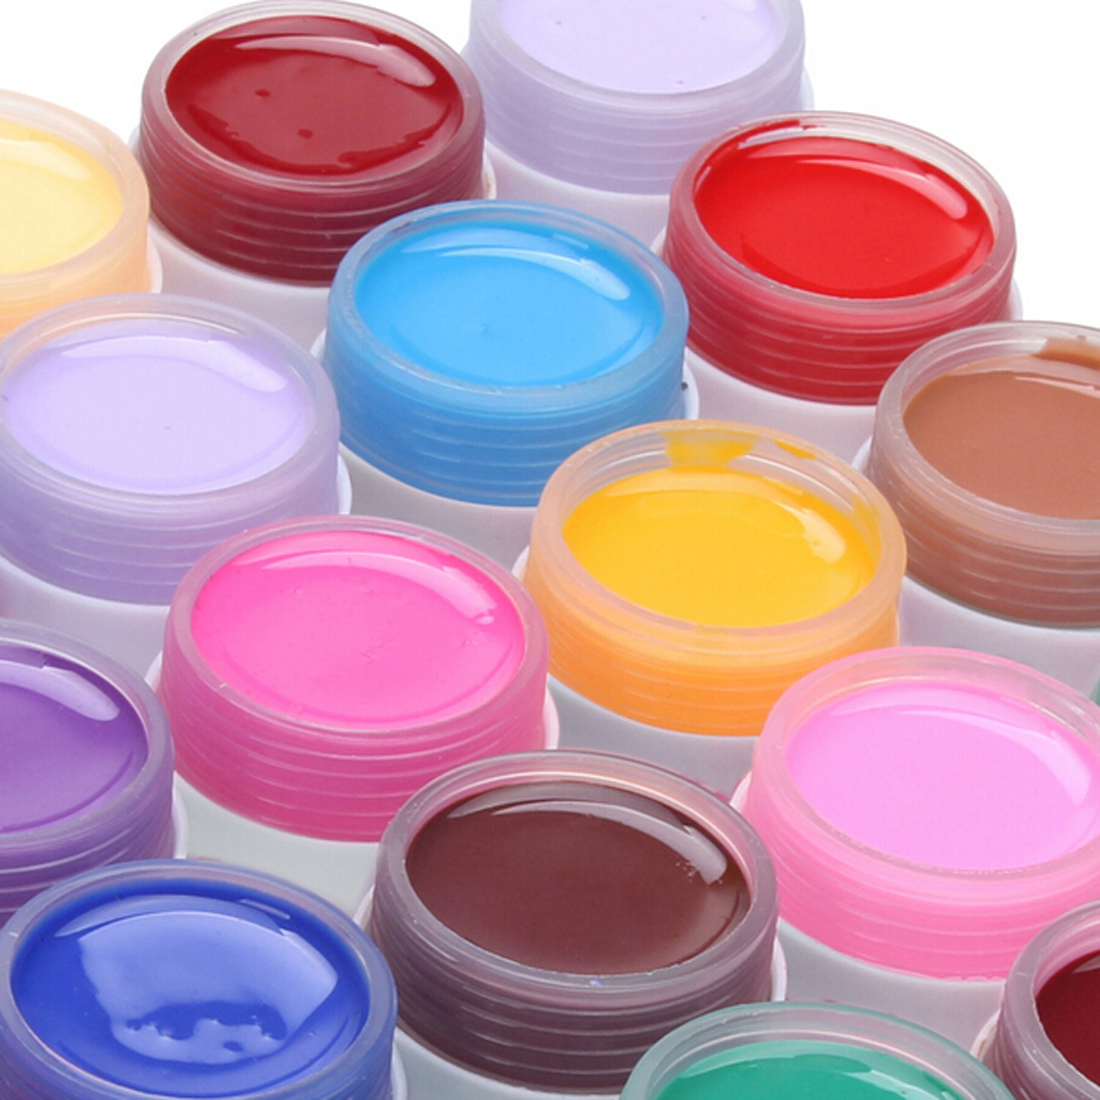 New Arrival For Nail Art Tips Manicure UV Nail Polish Gel 36 Pot Pure Color Decor Hot Sell(China (Mainland))